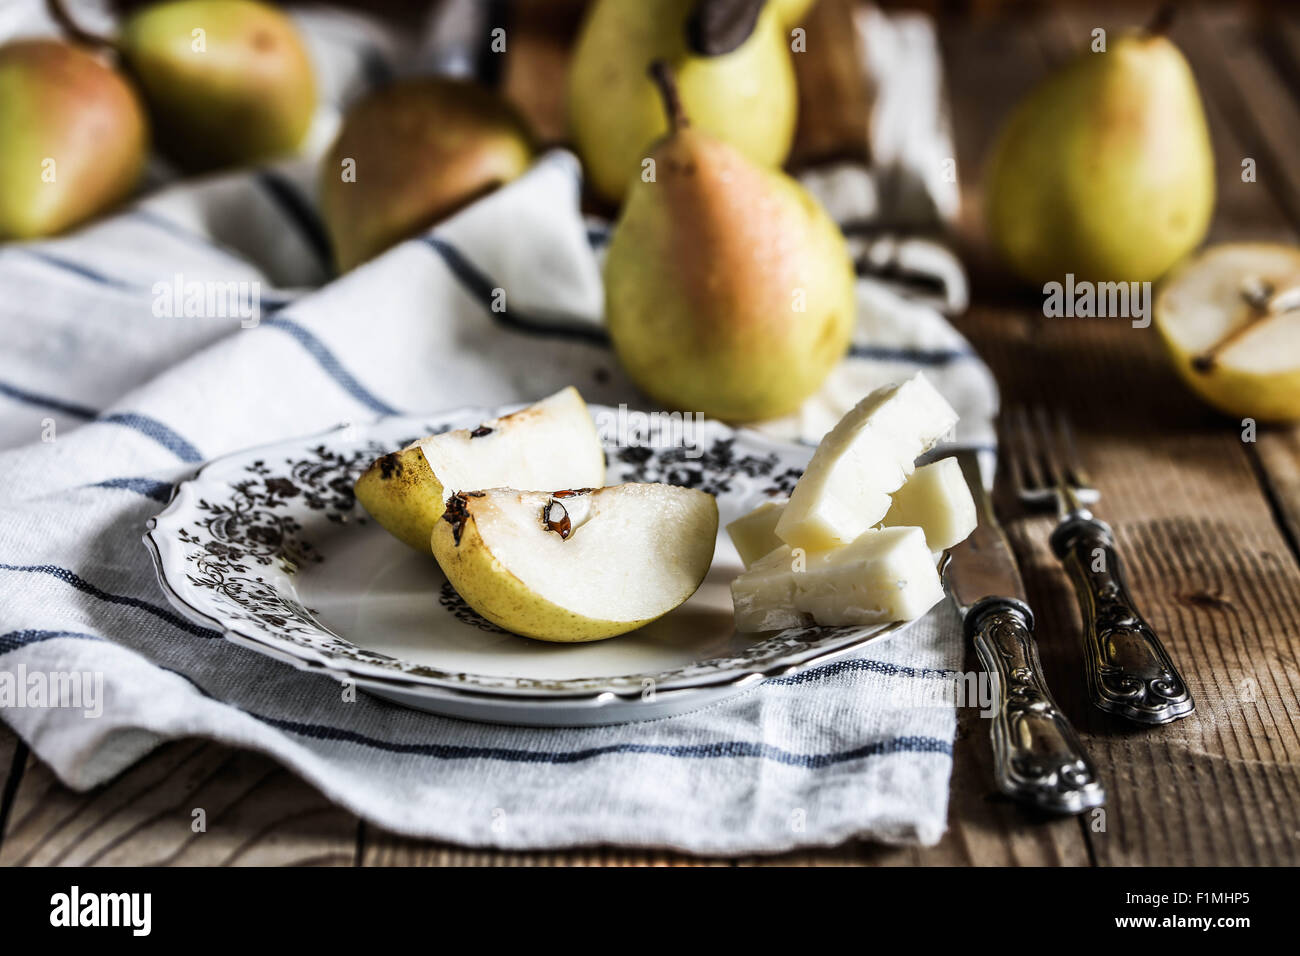 Coscia pears with slices of italian asiago cheese. - Stock Image